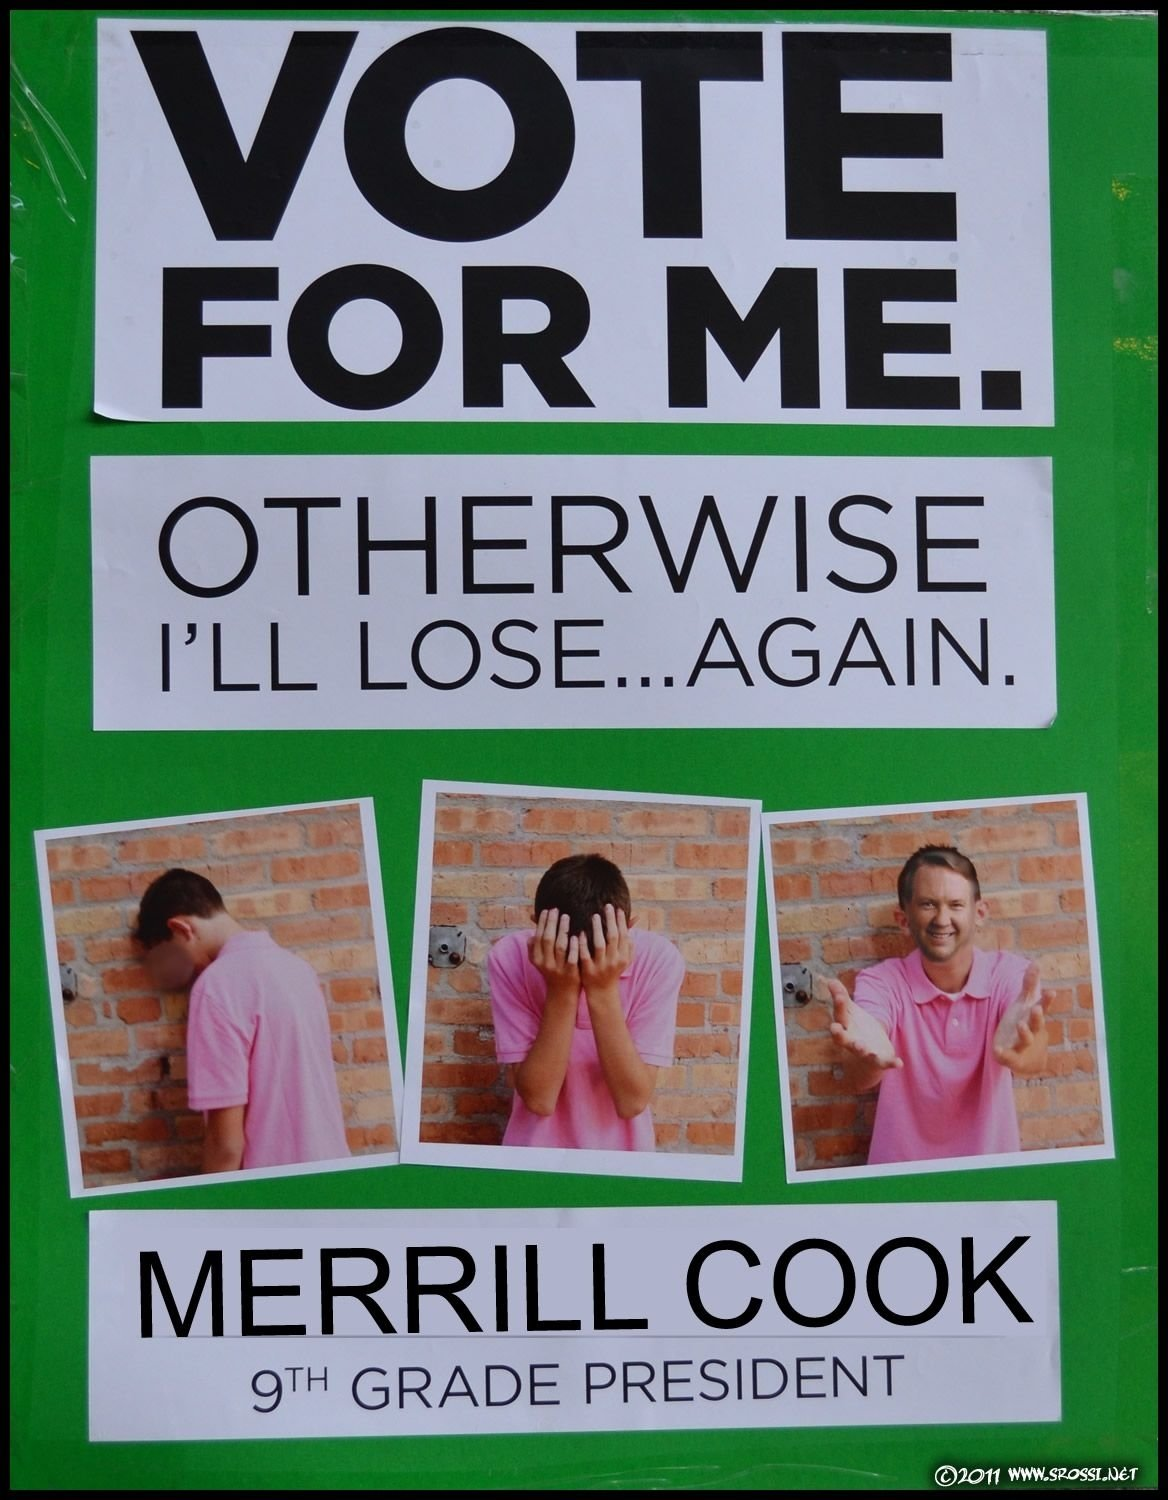 25 hilarious student council campaign poster ideas | campaign